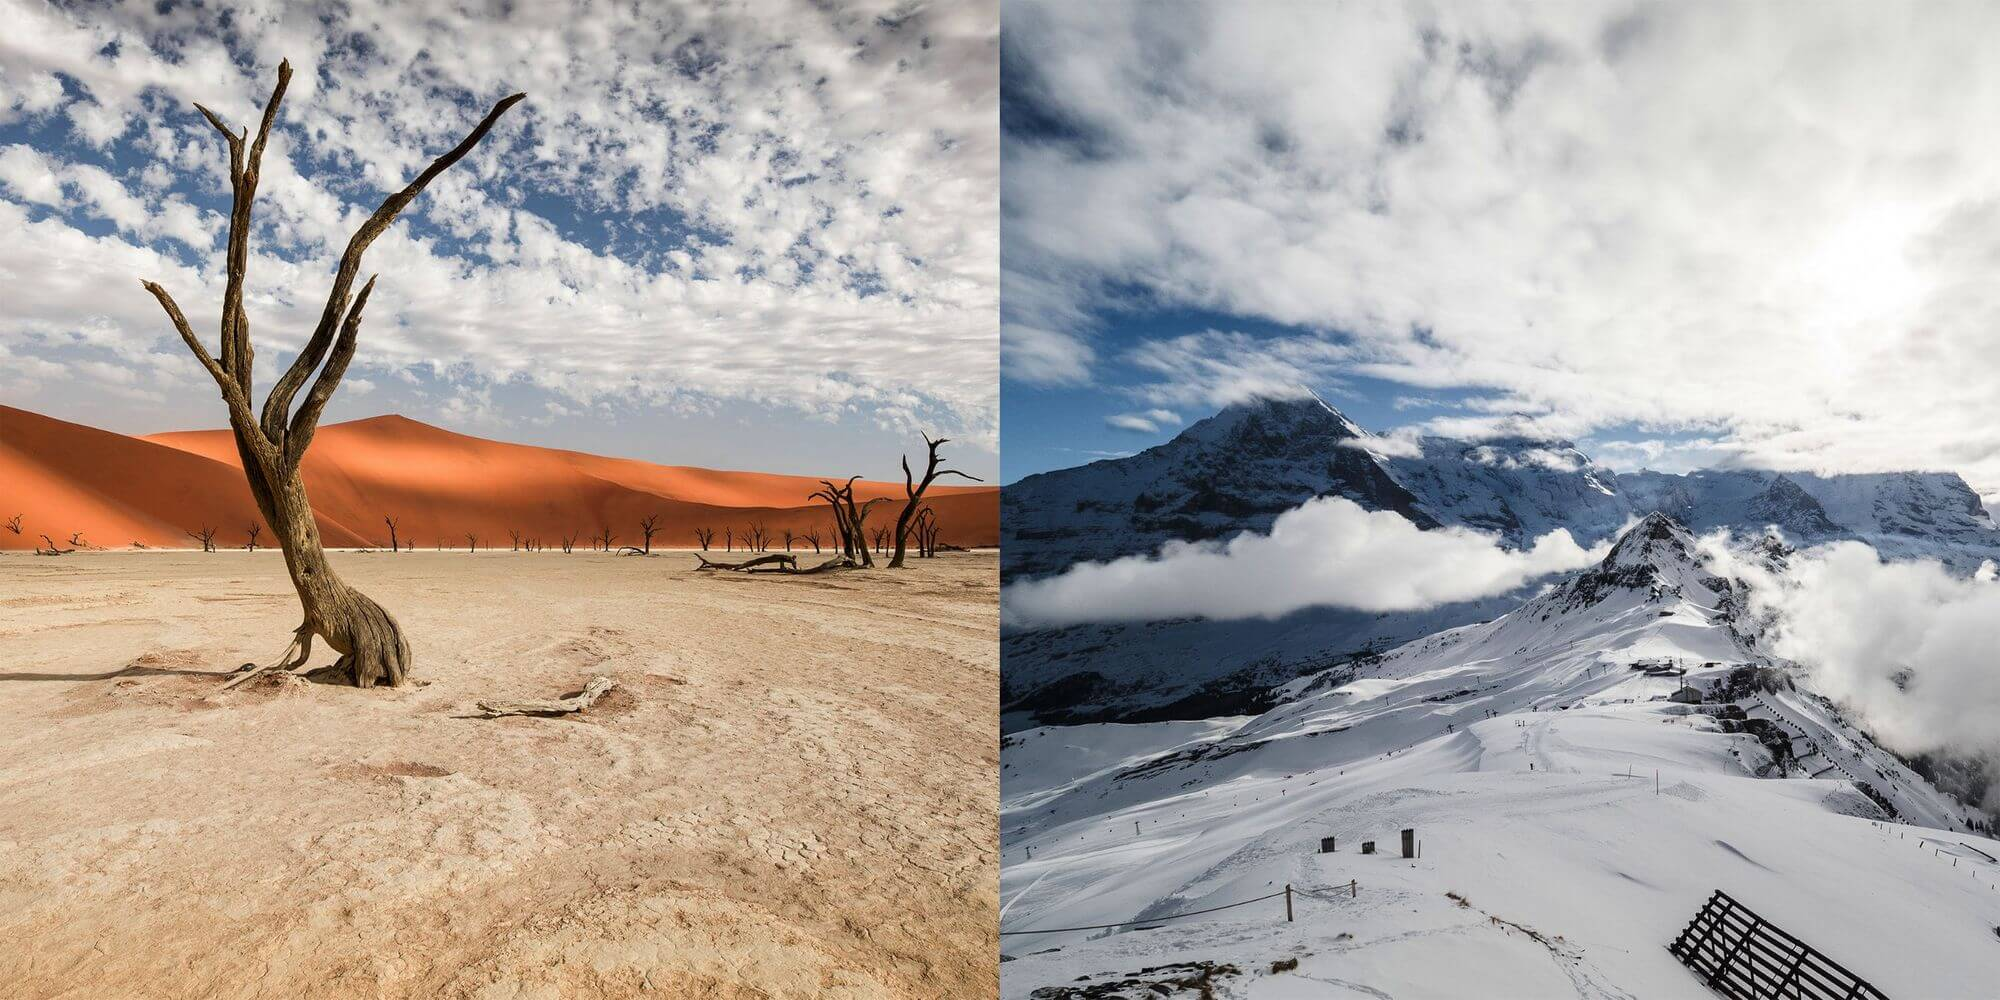 Namibian sands vs. Alpine Ski Cups